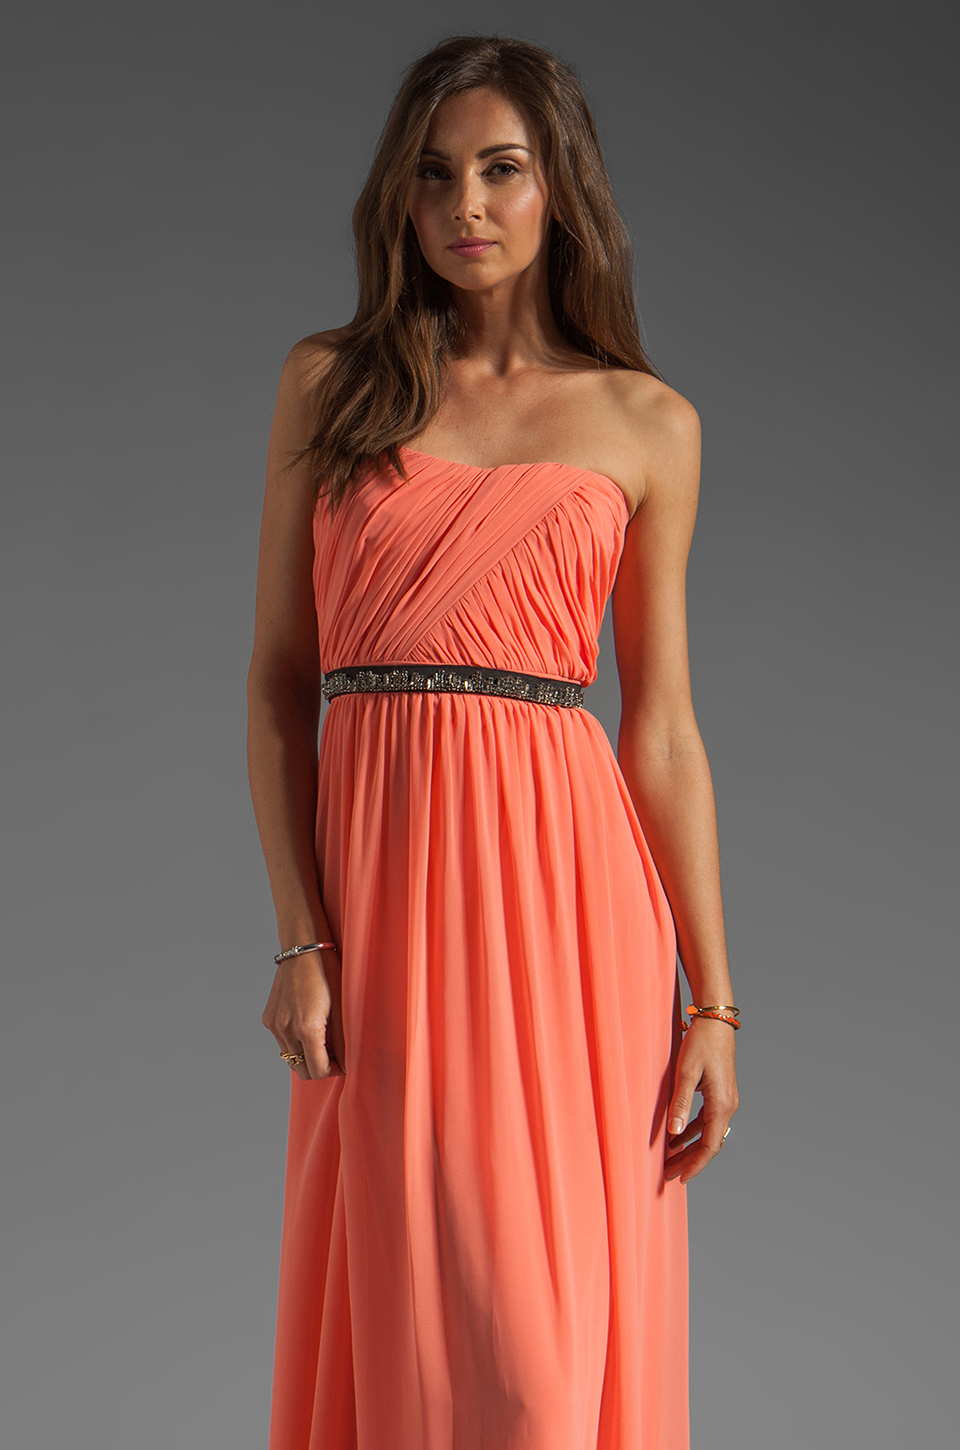 ERIN erin fetherston Skyscraper Gown in Fusion Coral